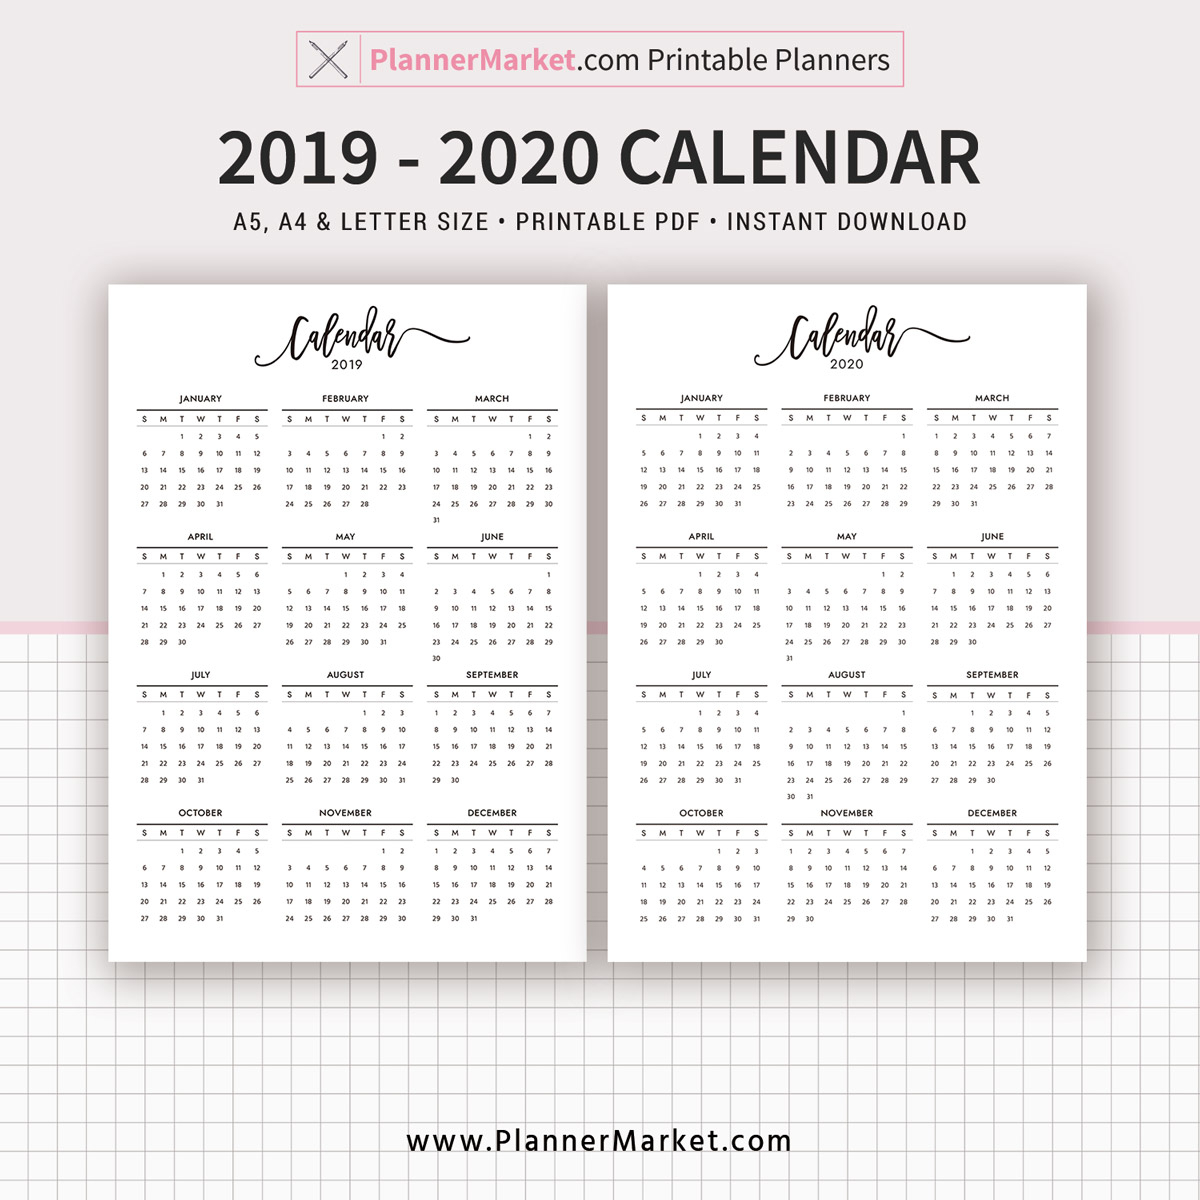 2019-2020 Yearly Calendar Printable, Filofax A5, A4, Letter Size, Planner  Refill, Planner Pages, Planner Inserts, Instant Download with 2019-2020 Calendar Printable Free No Download